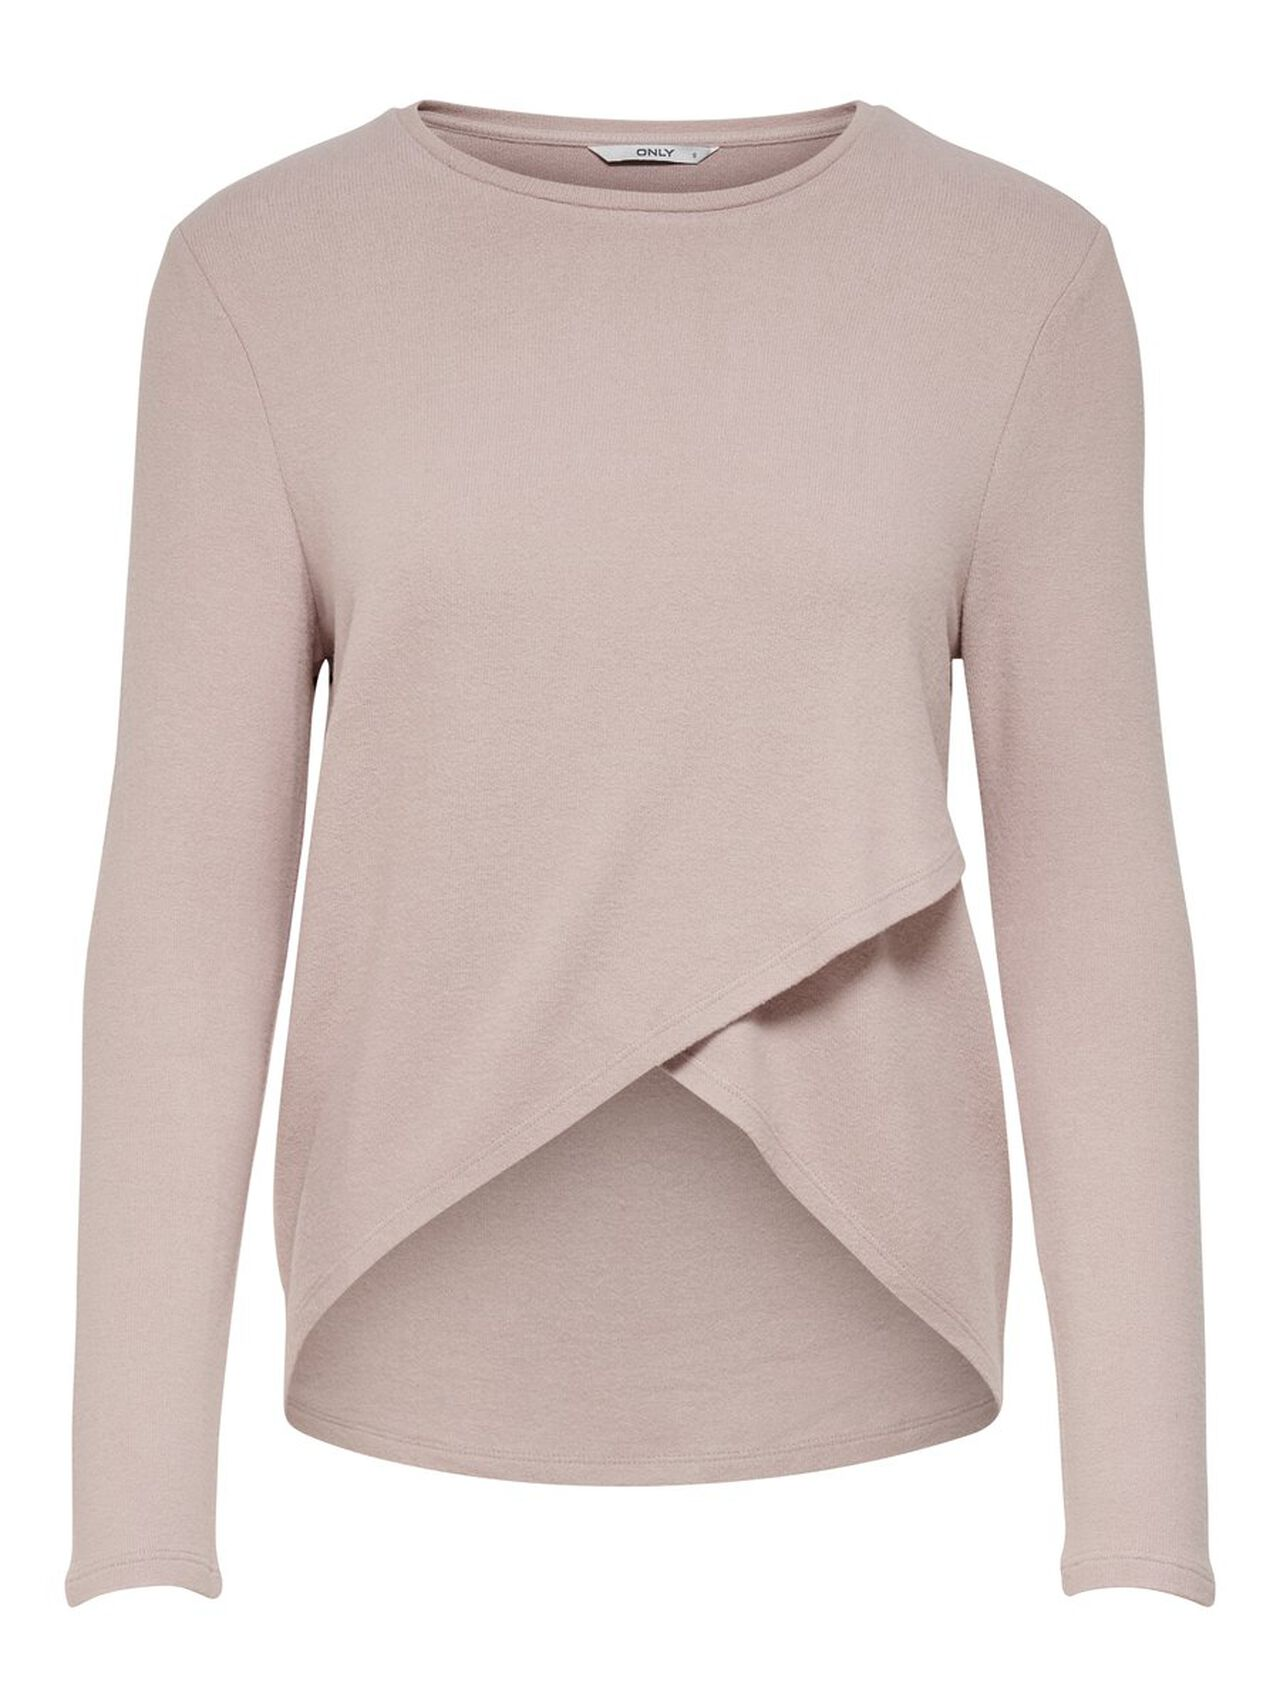 ONLY Long Sleeved Blouse Women Pink